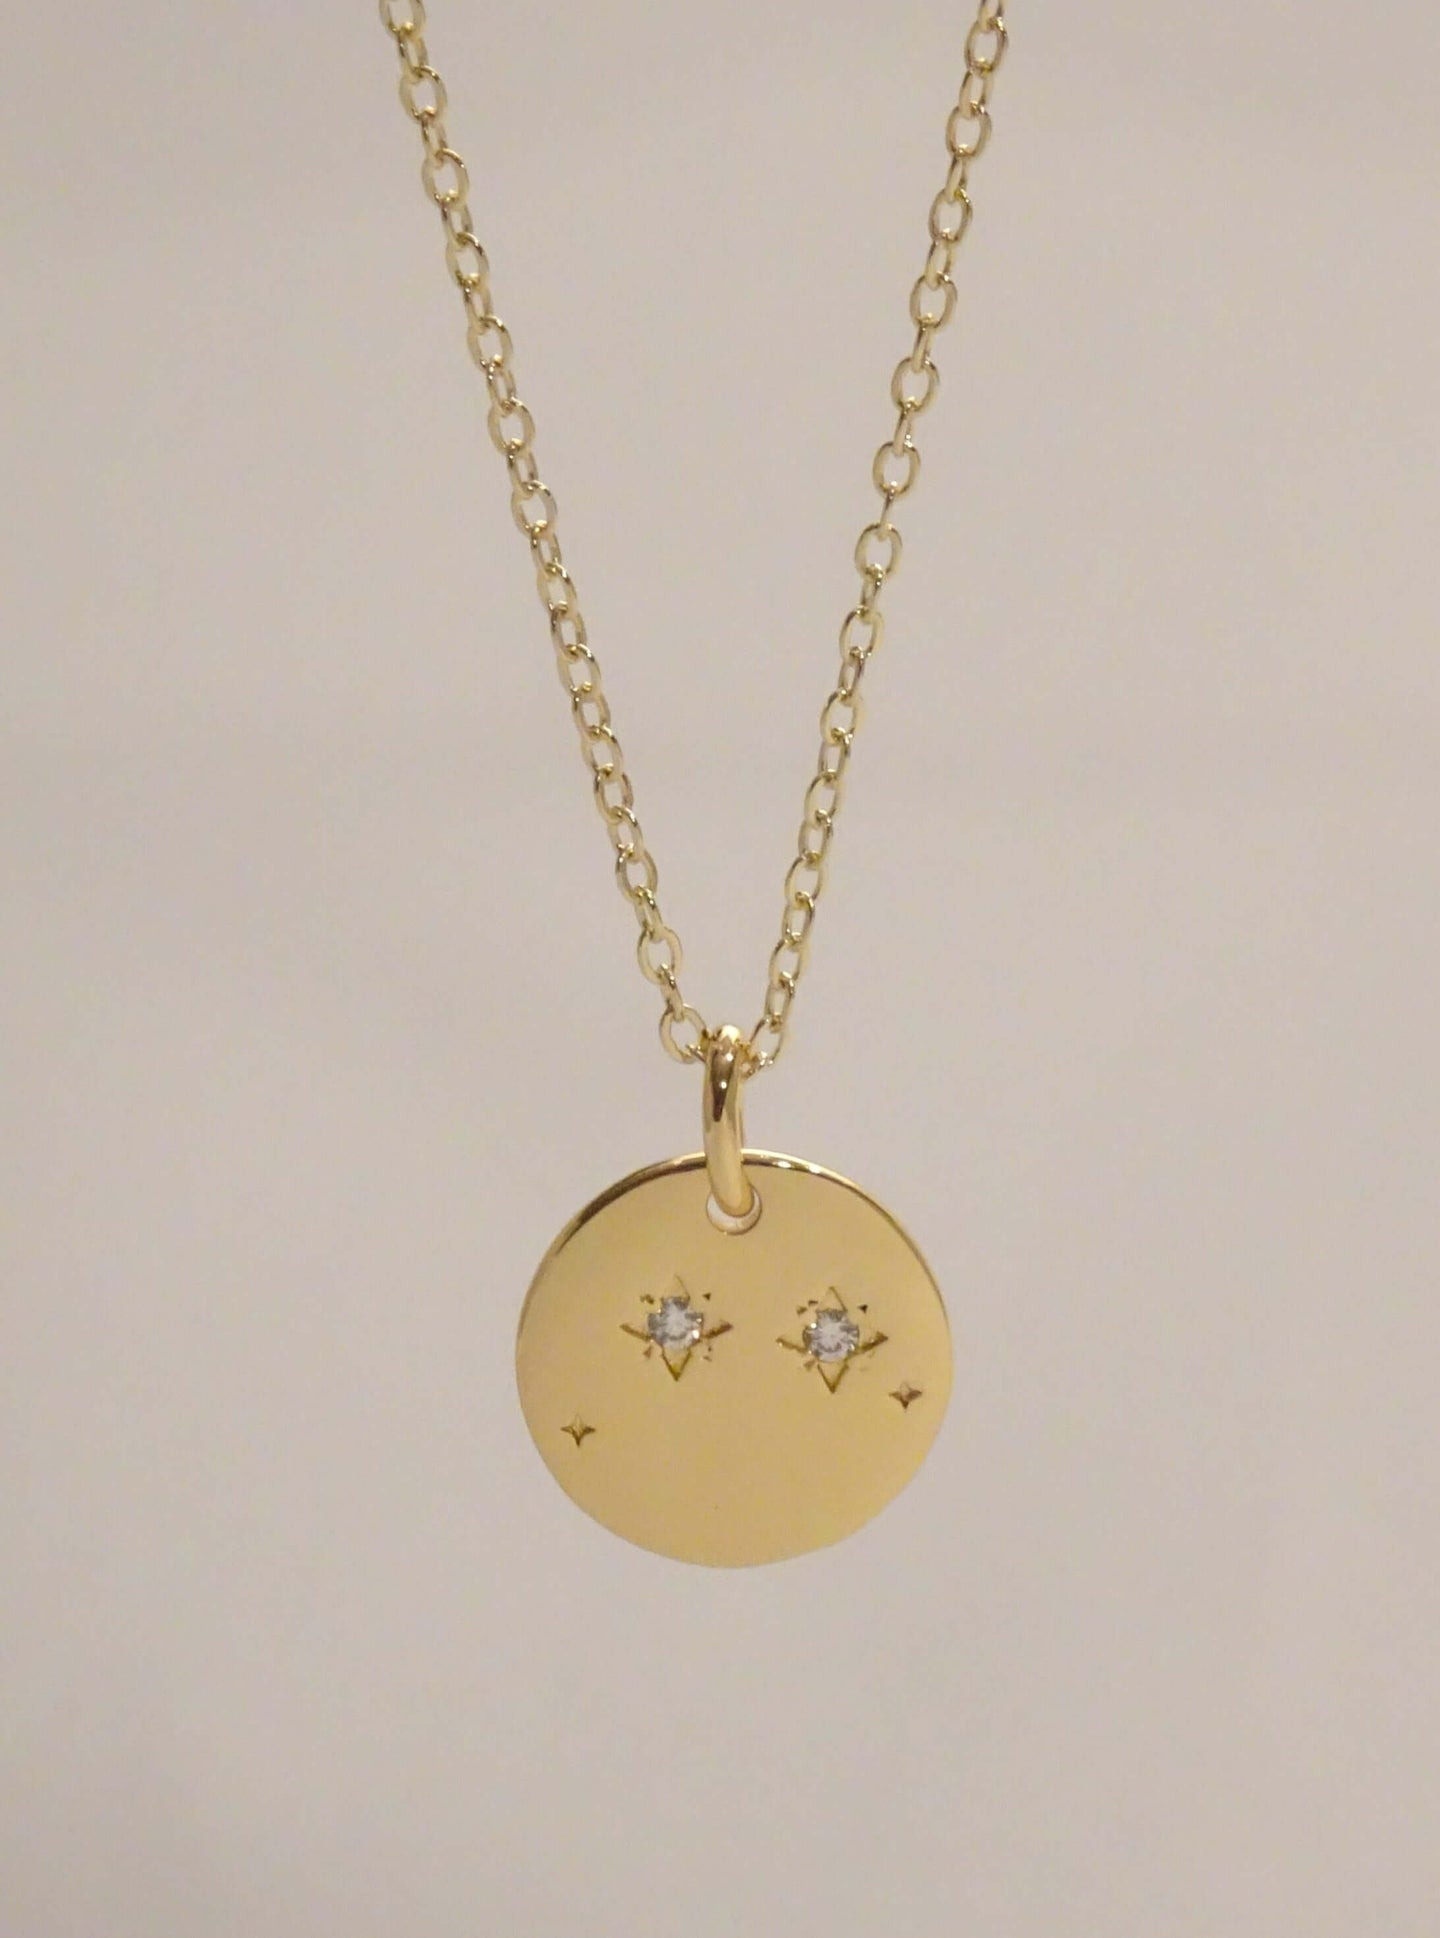 aries necklace, aries gold necklace, aries necklace for men, aries zodiac necklace, zodiac necklace, zodiac sign necklace, zodiac necklace gold, zodiac pendant necklace, aries jewelry, jewelry for aries woman, zodiac constellation necklace